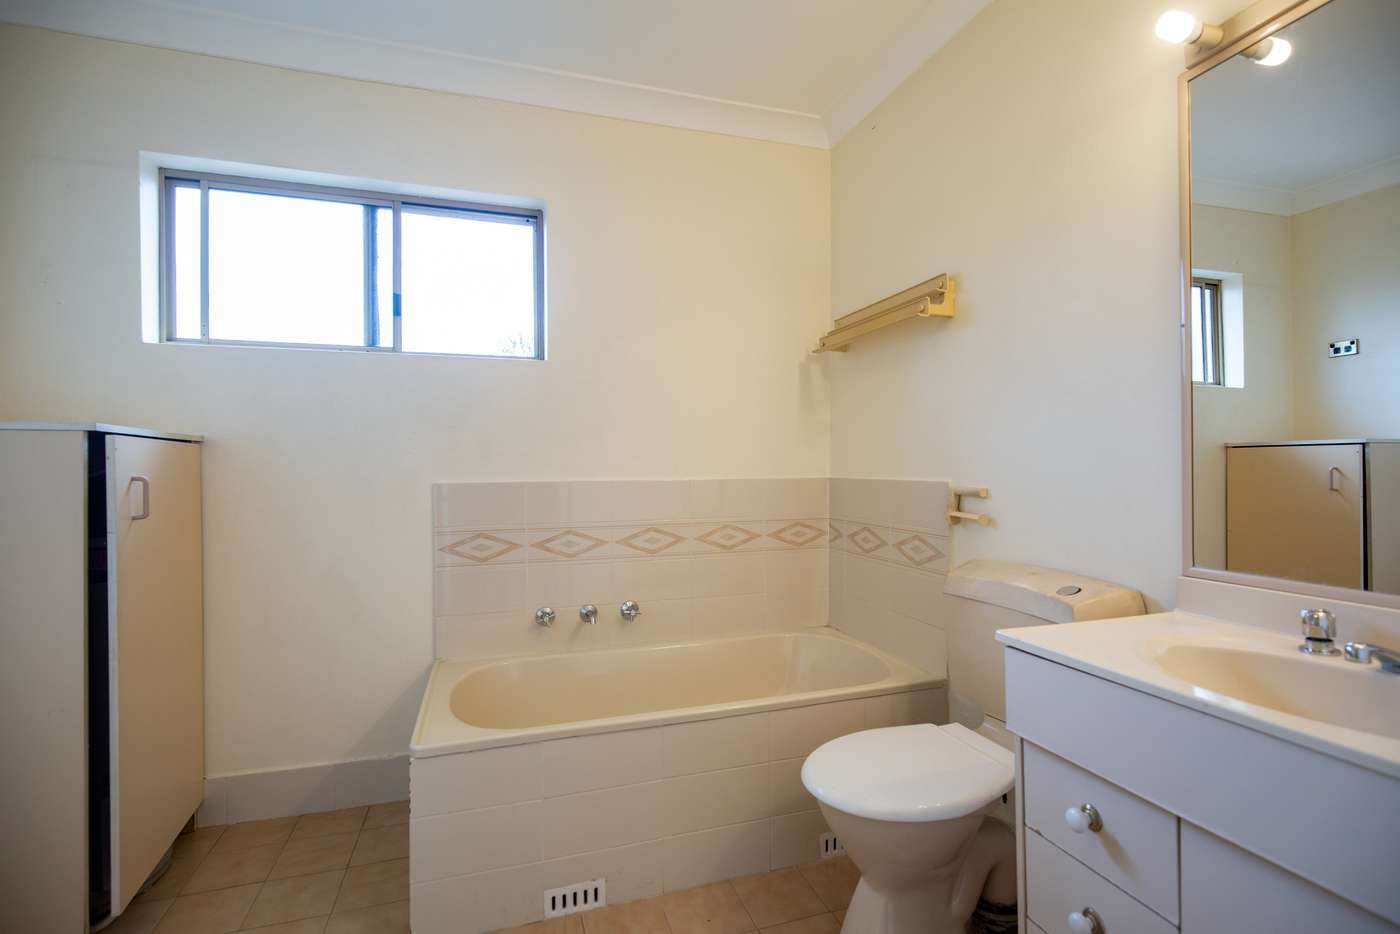 Seventh view of Homely apartment listing, 110/219 Chalmers Street, Redfern NSW 2016